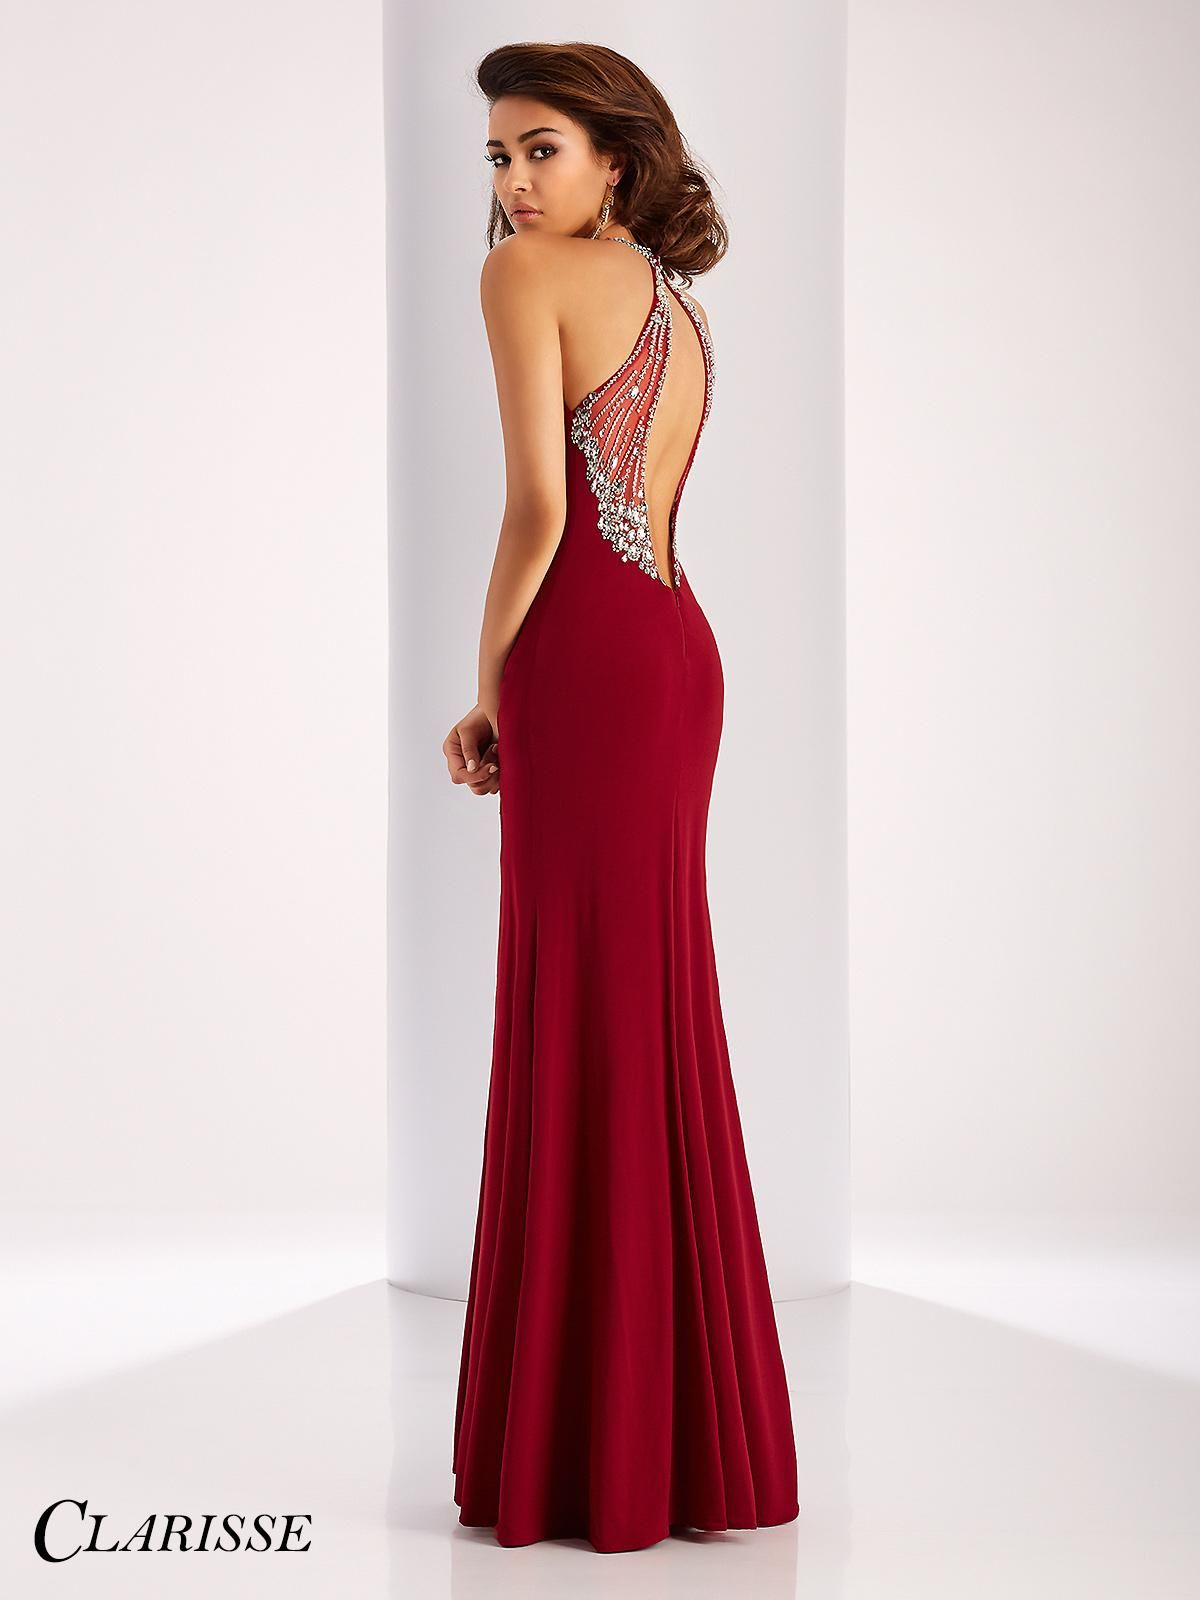 c36c548b96 Sexy Clarisse 2017 Prom Dress Style 3078. Find the perfect balance of sexy  and elegant with this gorgeous fitted prom dress featuring a sexy slit